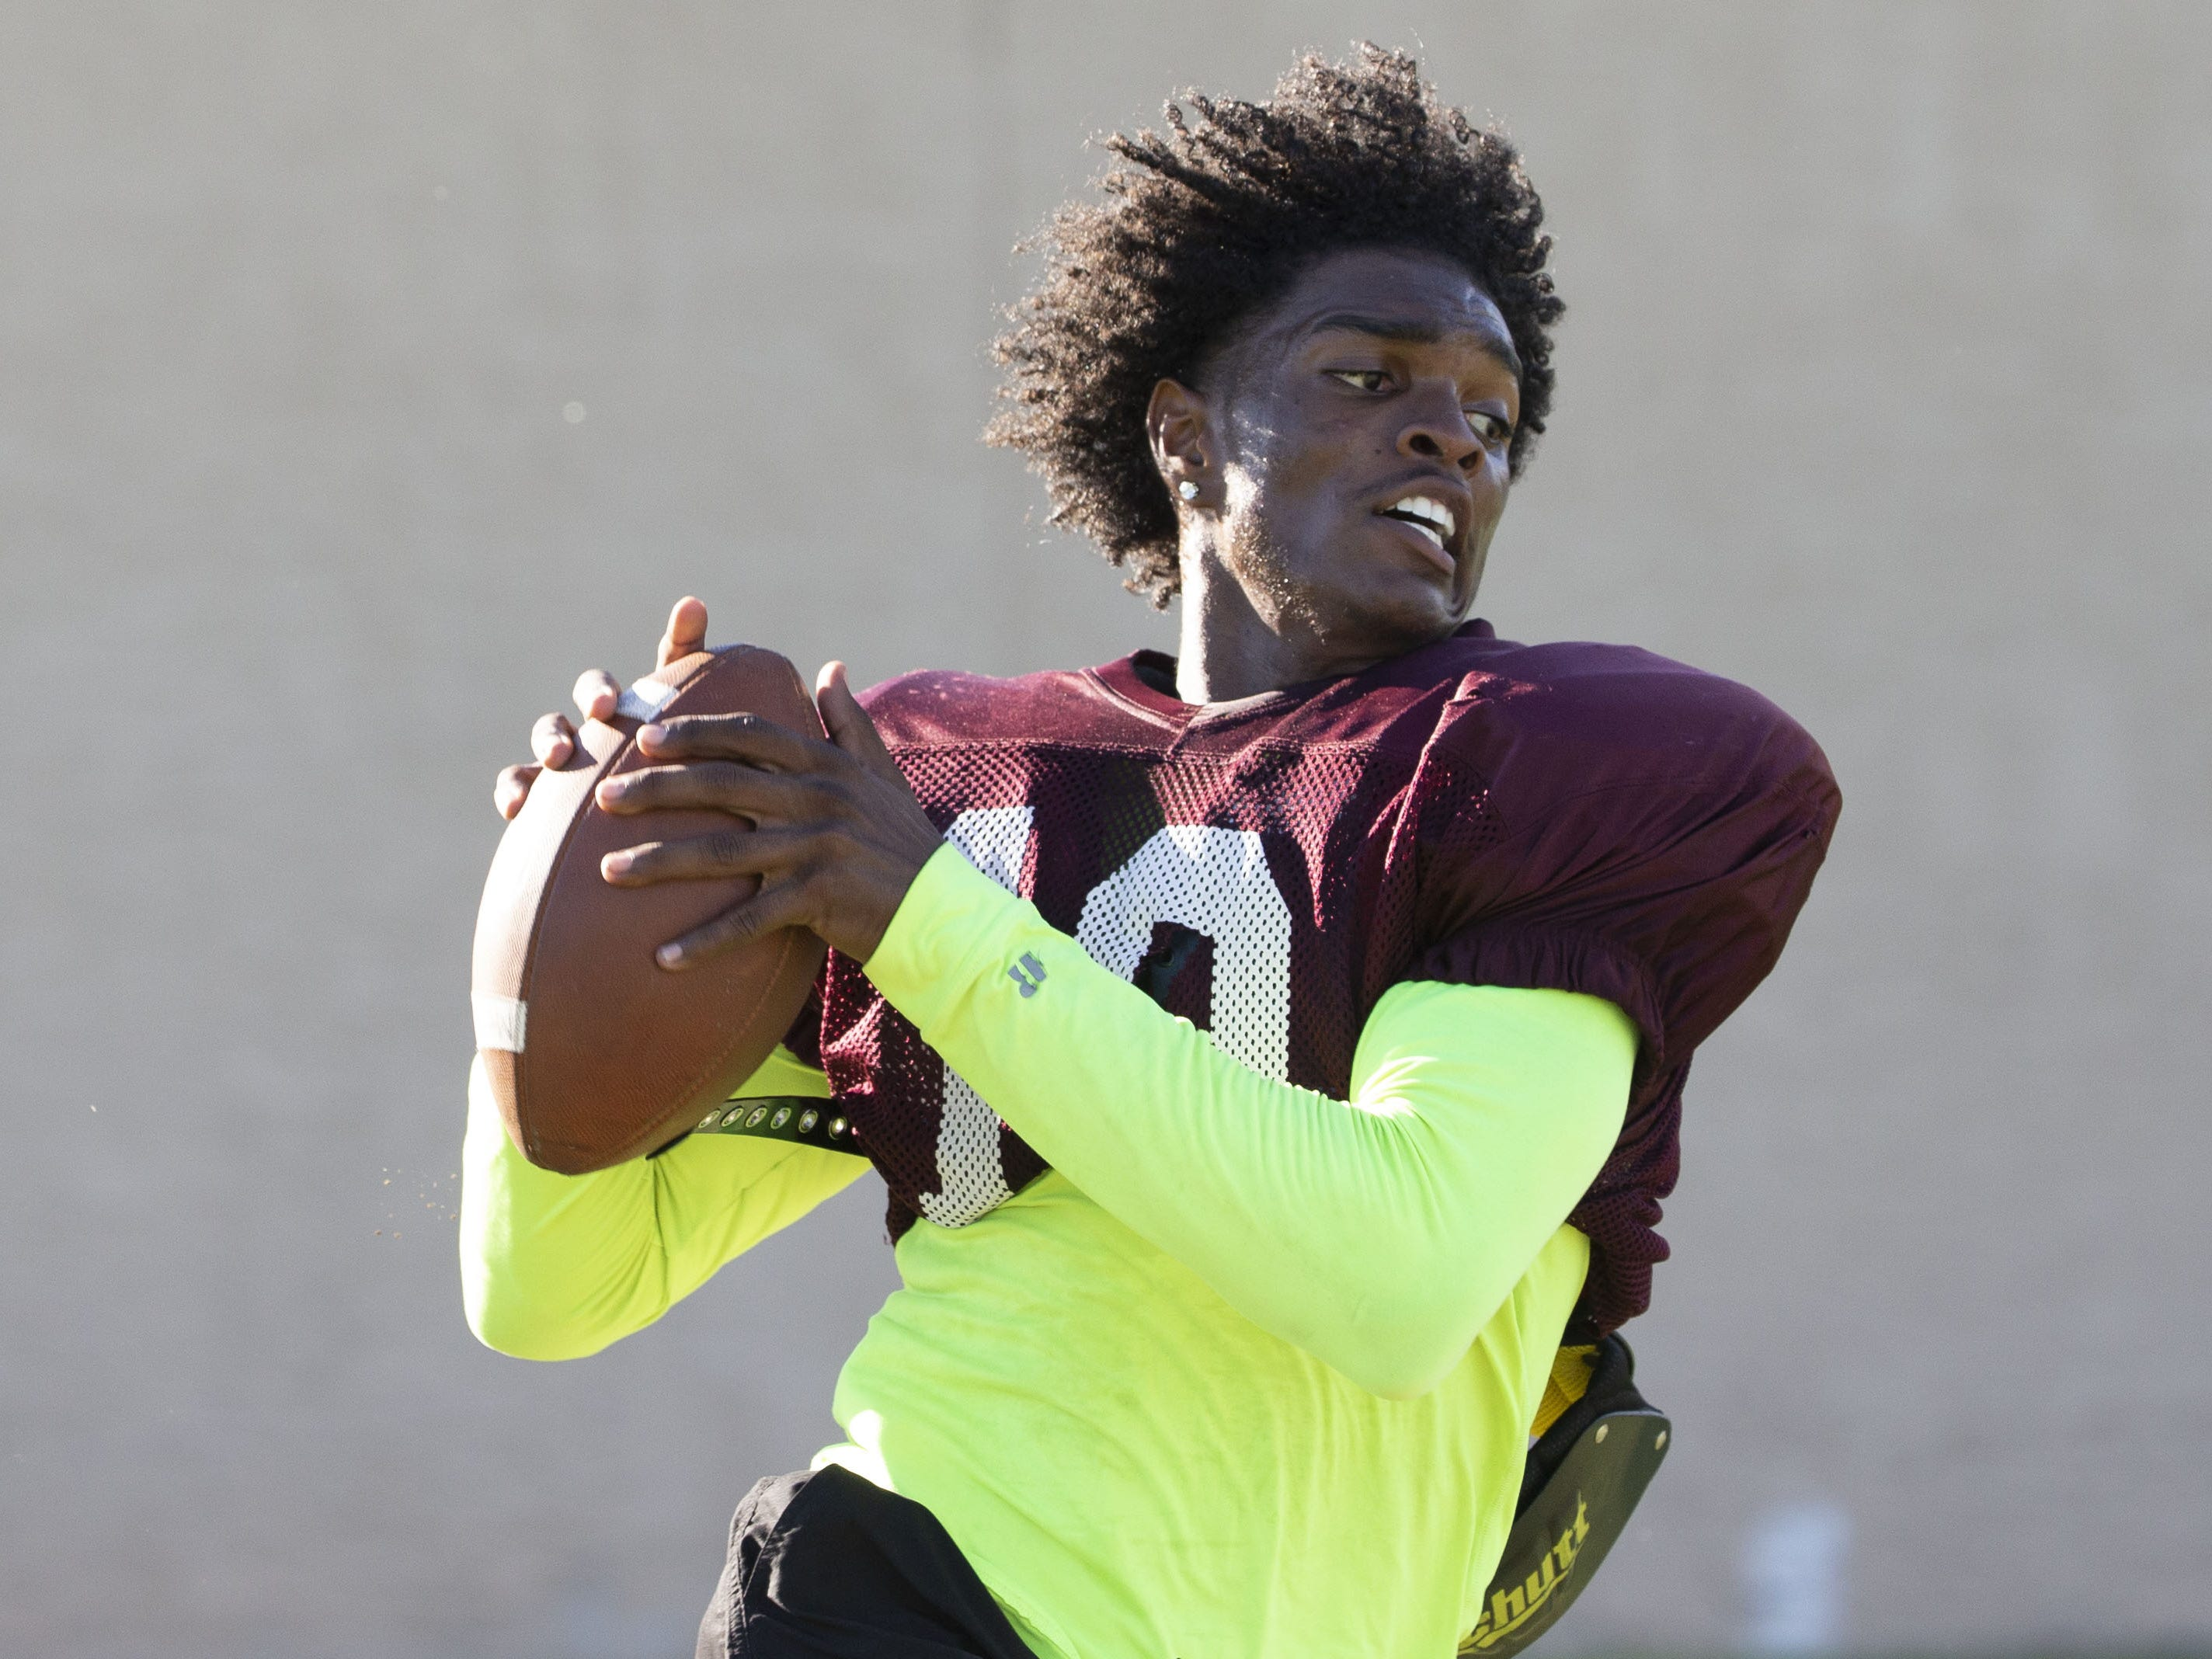 Mountain Pointe's wide receiver Ahmen Williams runs a drill during practice in Phoenix on October 3, 2018.